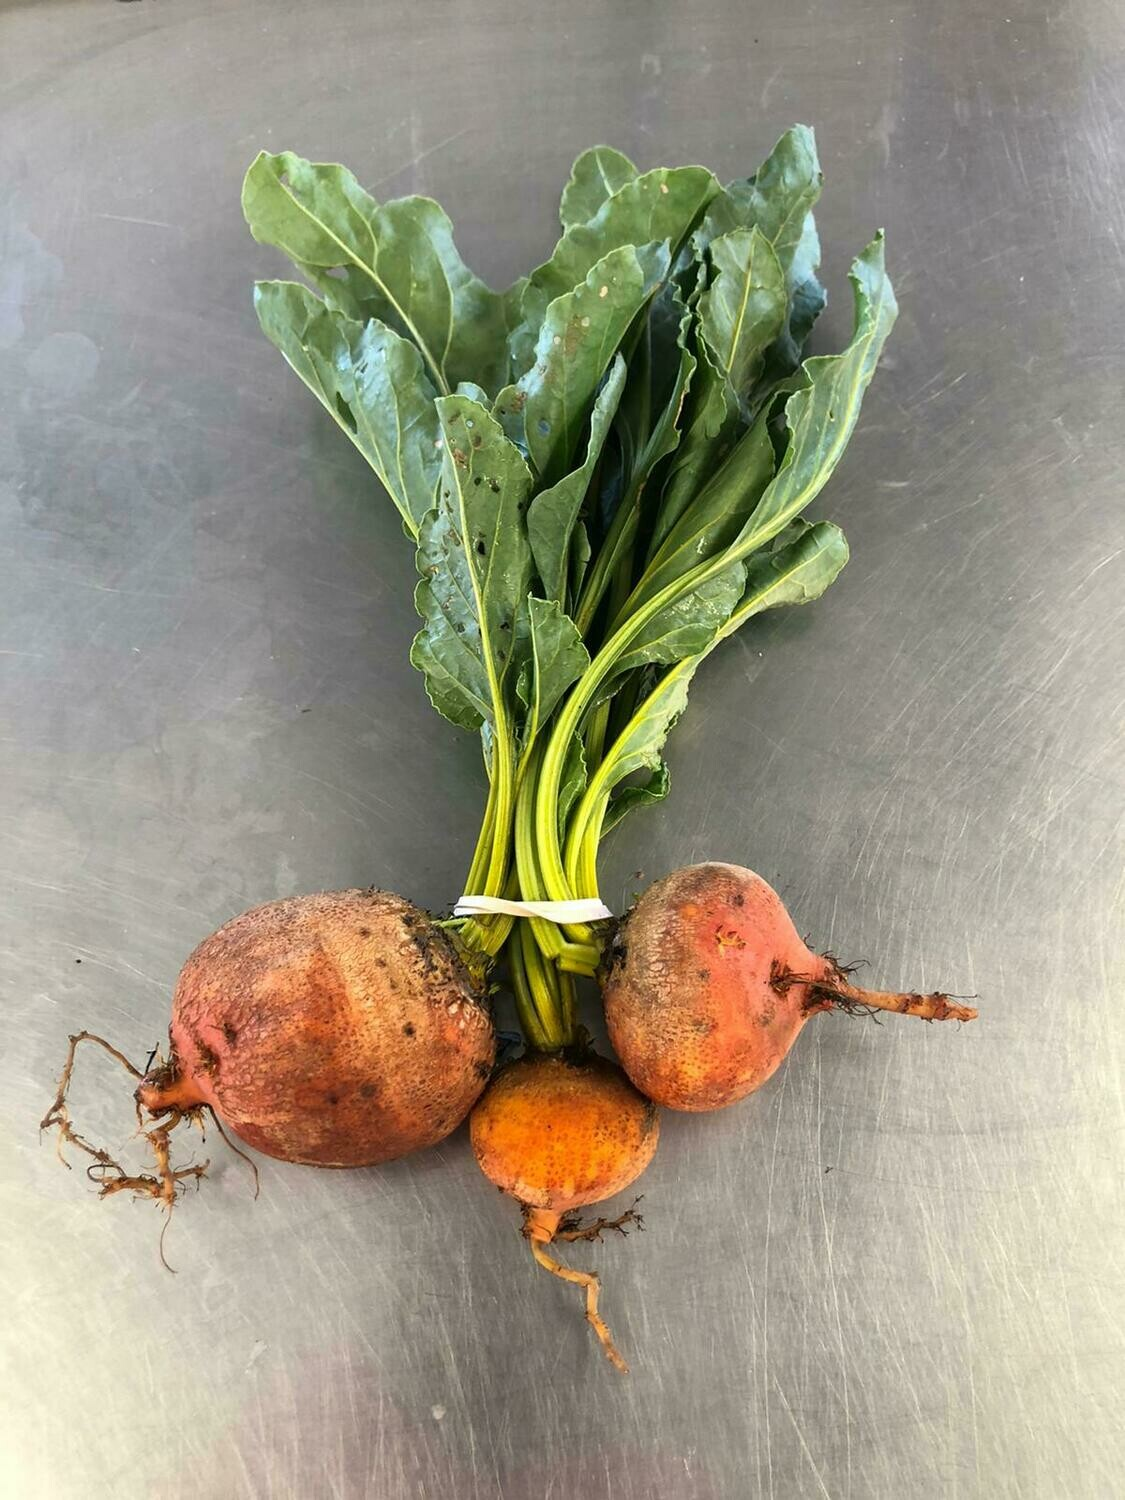 Beets Gold Bunched Organic